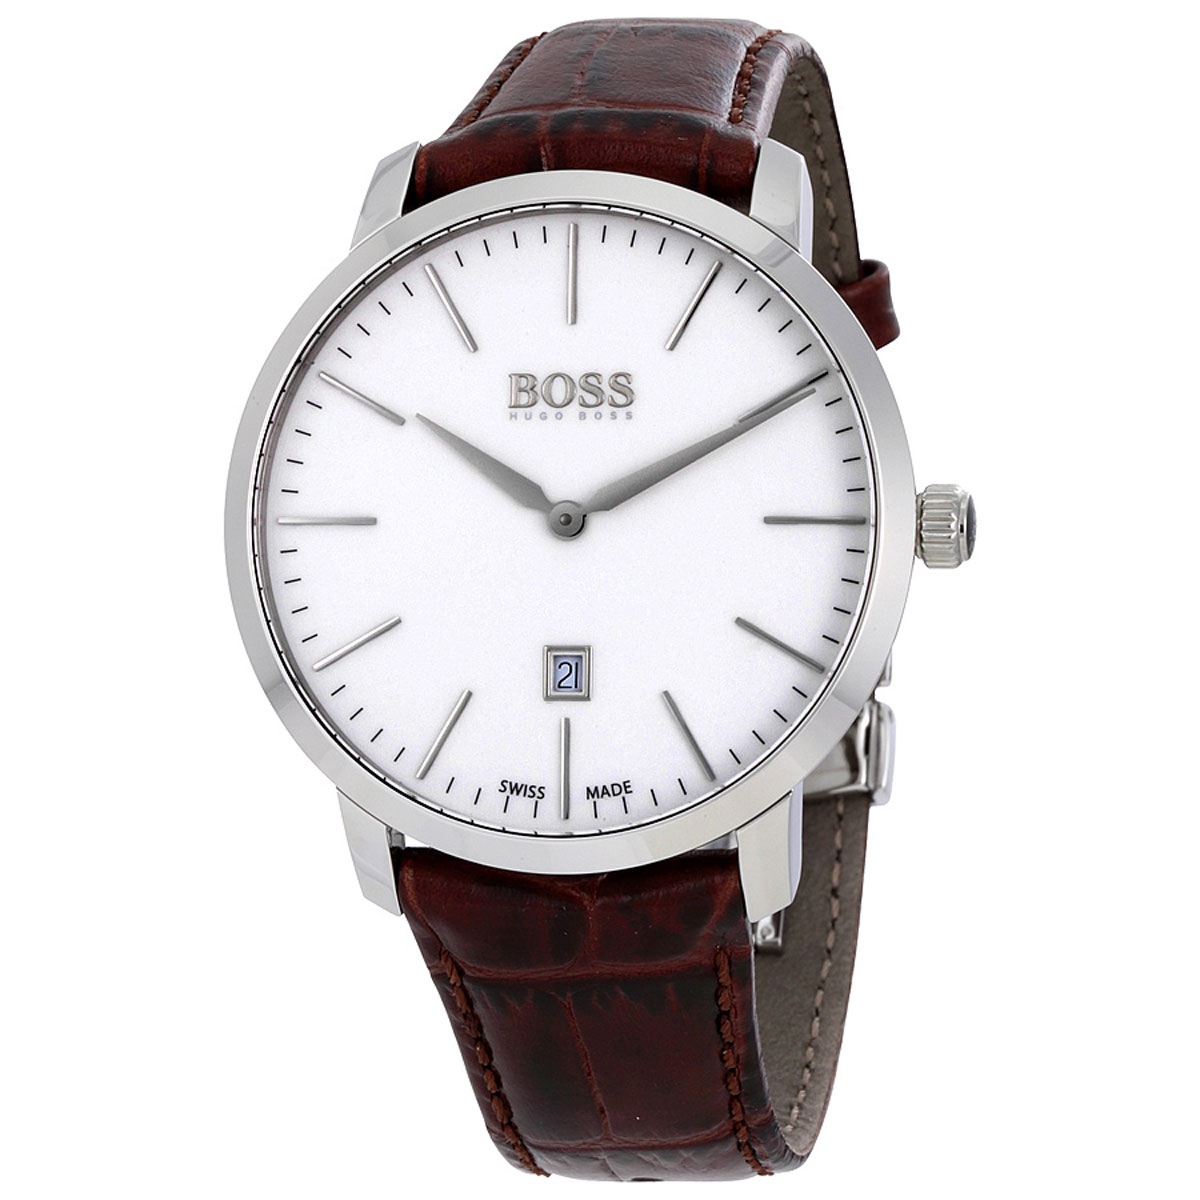 Hugo Boss Watch With Stainless Steel And Brown Leather Strap 1513255